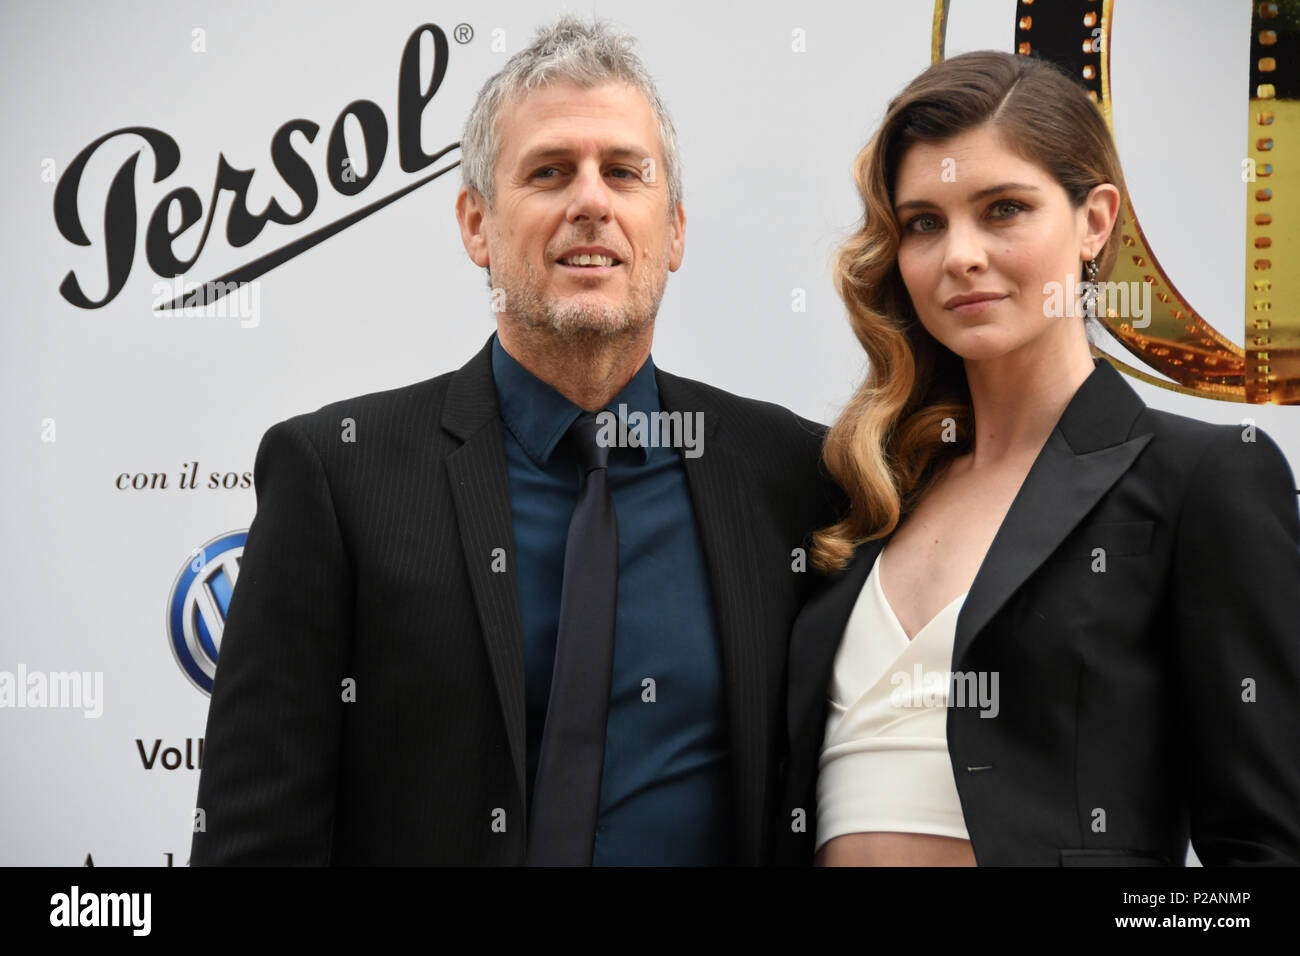 Rome Italy 13 June 2018 - Villa Medici - 2018 golden globe award 58th edition FabrizioLucci best photography 'the place' and with the girlfriend Vittoria Puccini Credit: Giuseppe Andidero/Alamy Live News - Stock Image